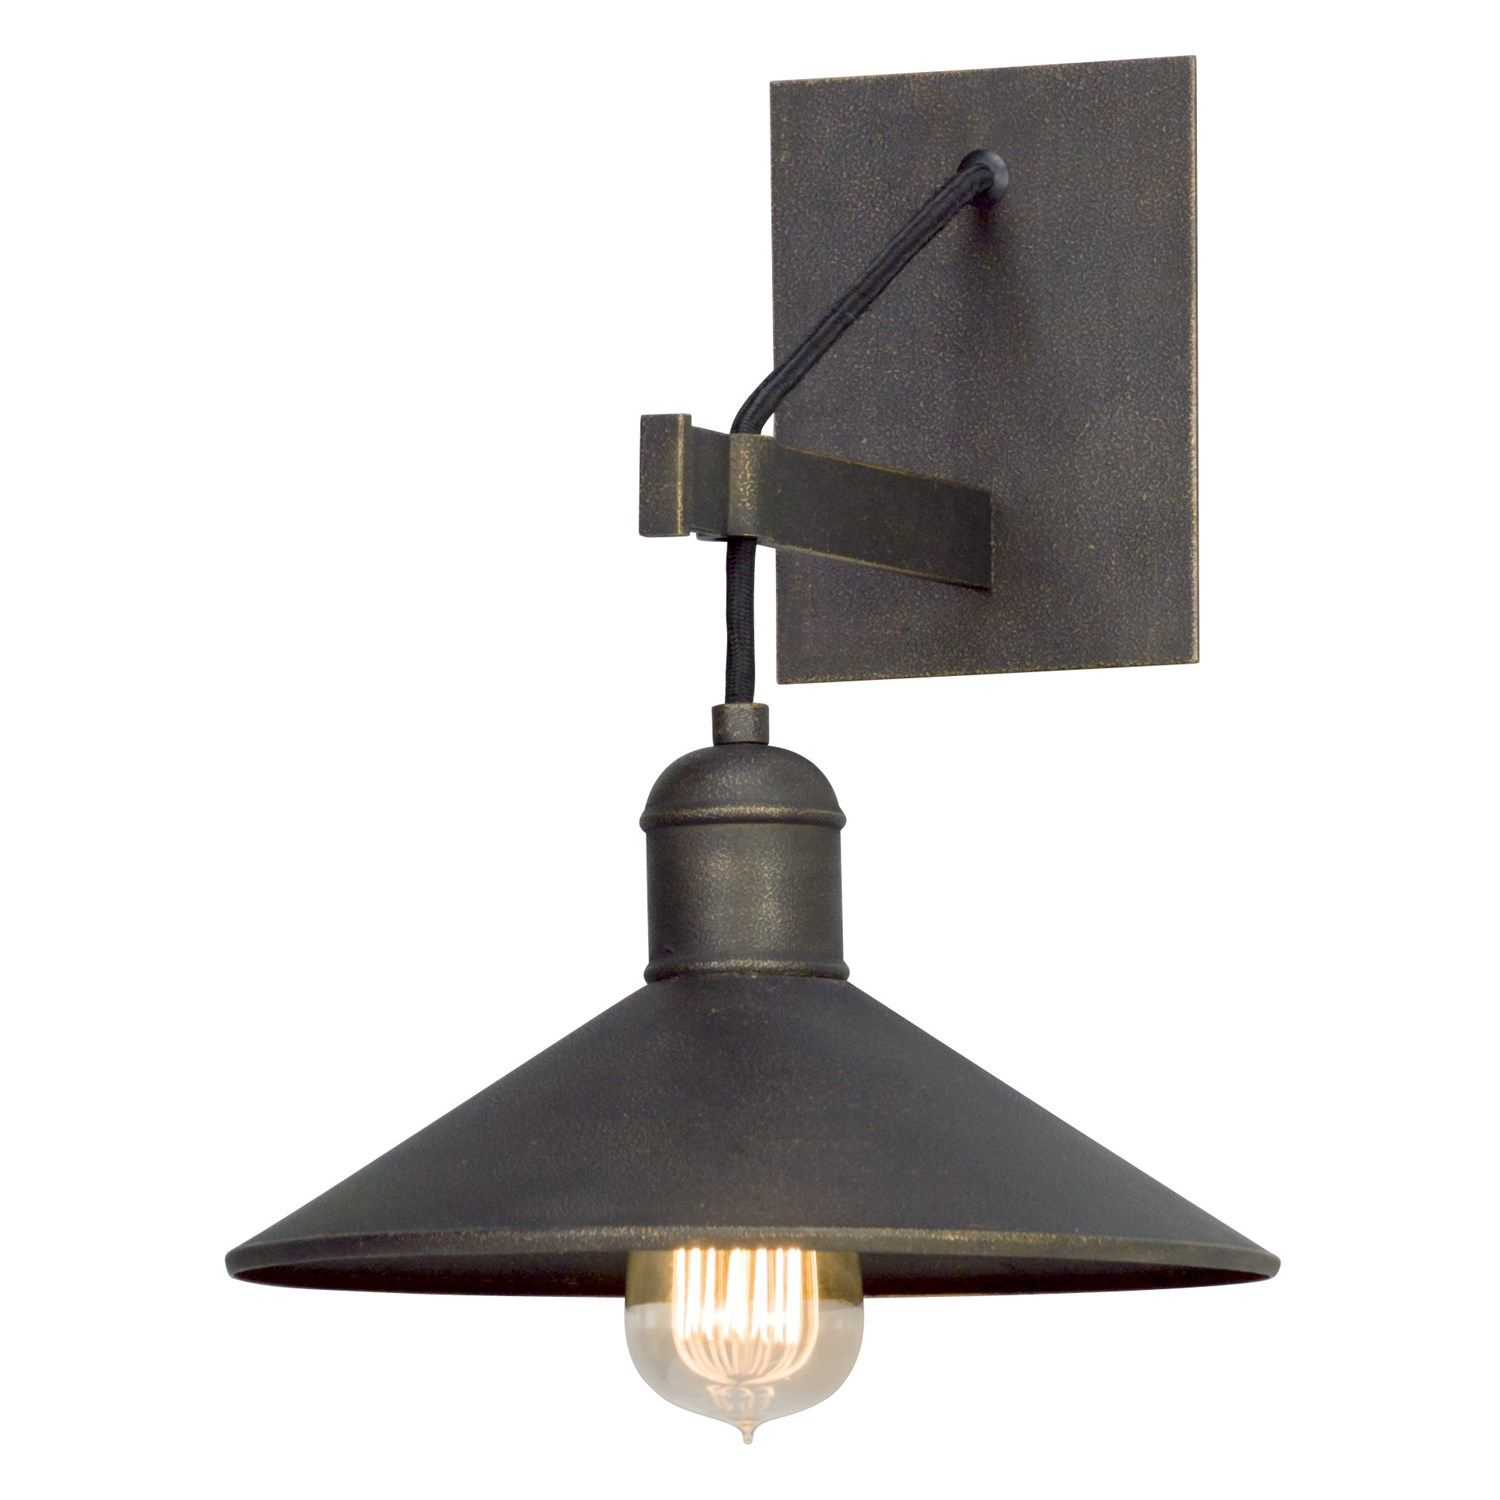 Troy B5421 Mccoy 1 Light Wall Sconce In Vintage Bronze Troy